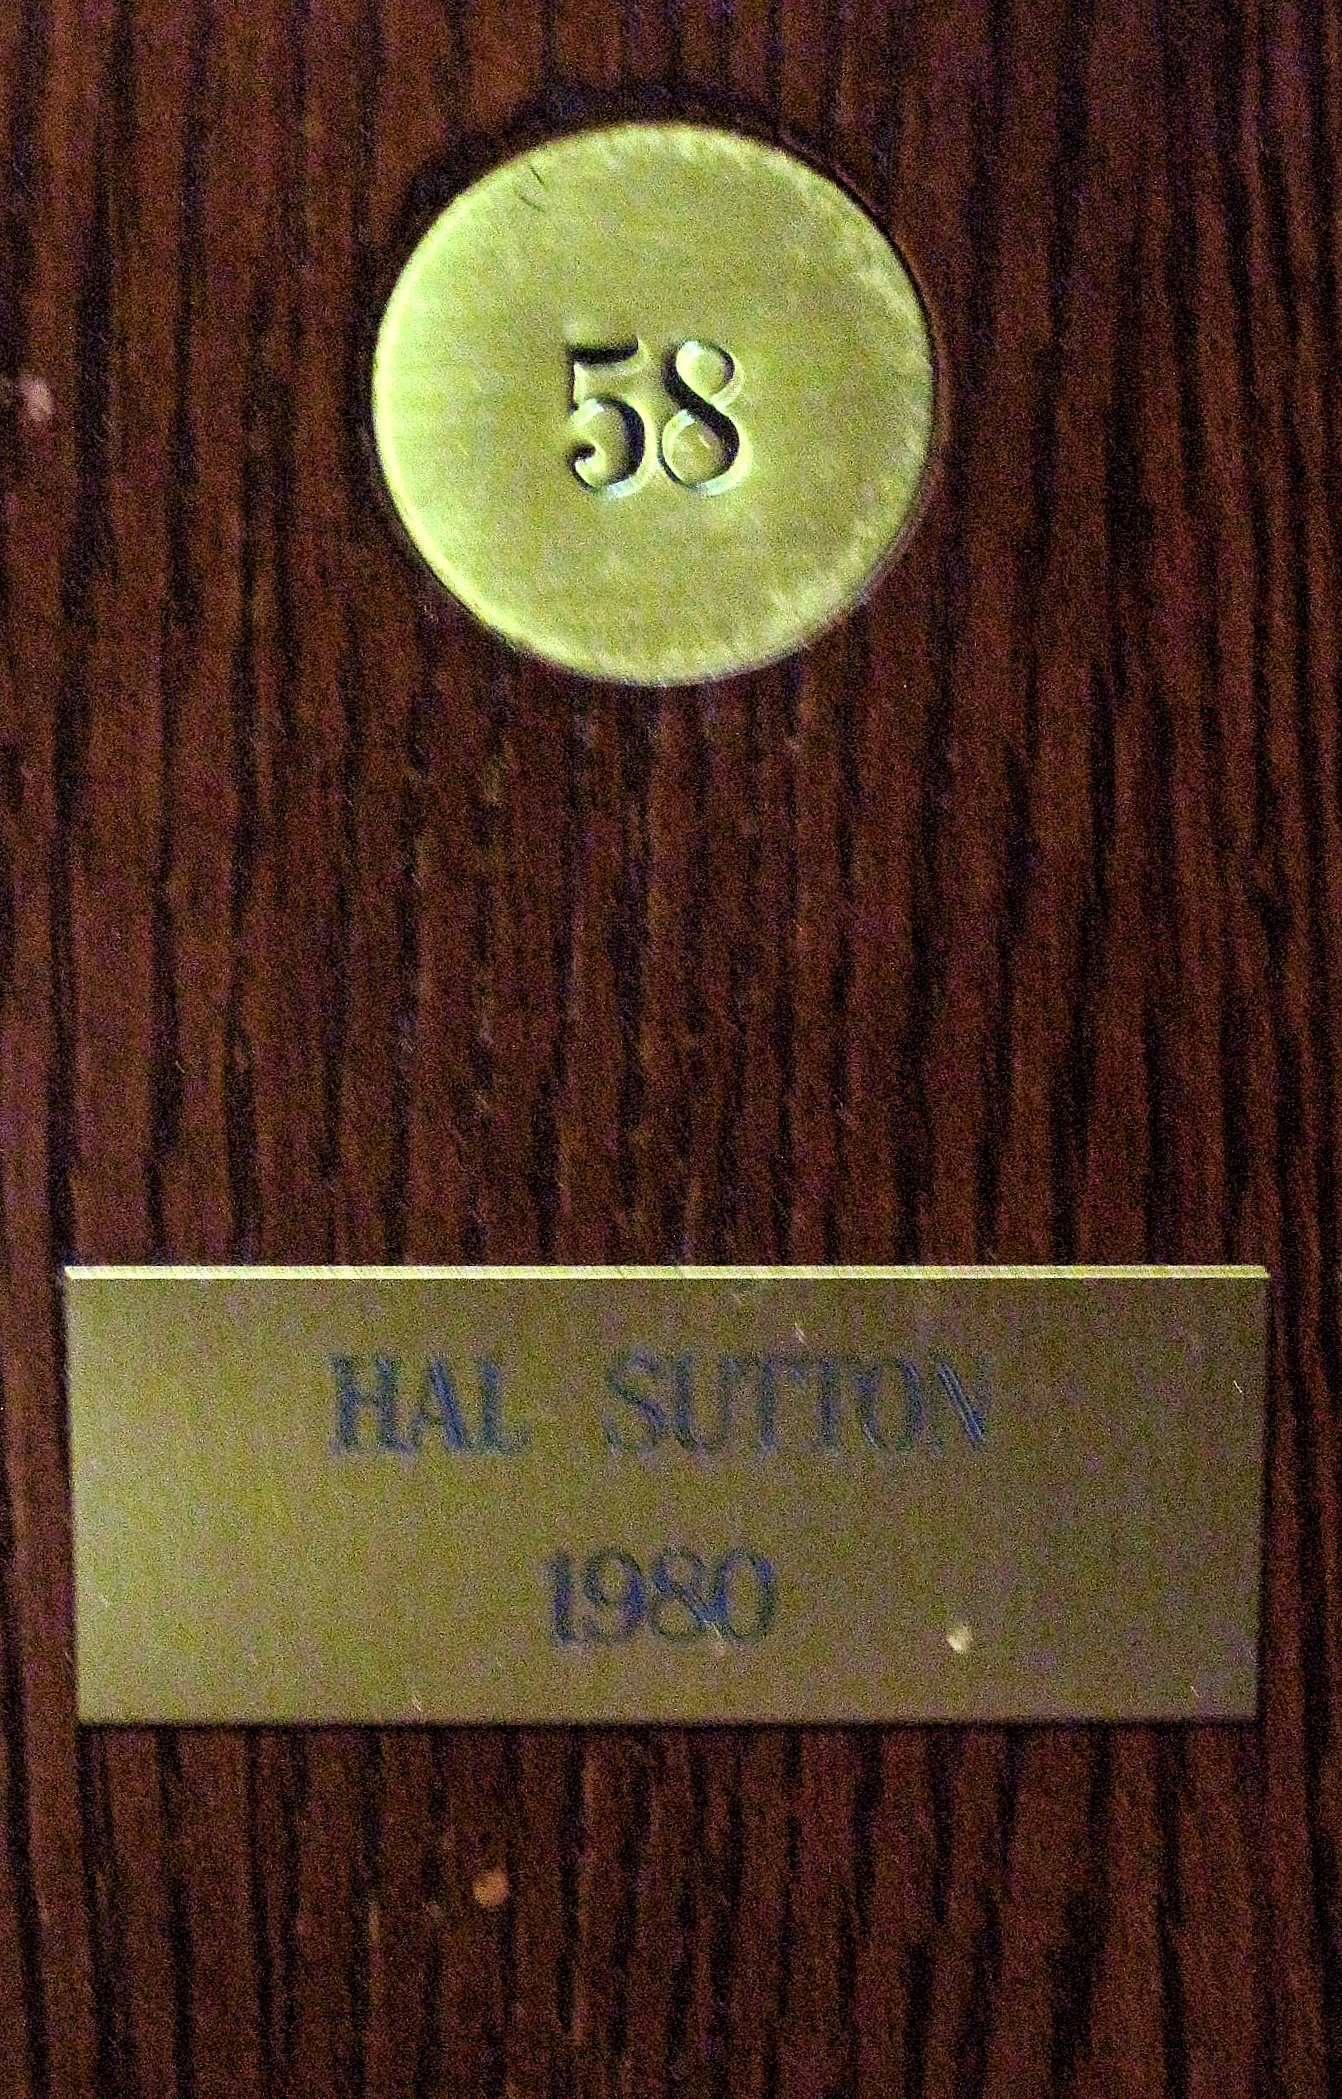 Hal Sutton North and South Pinehurst